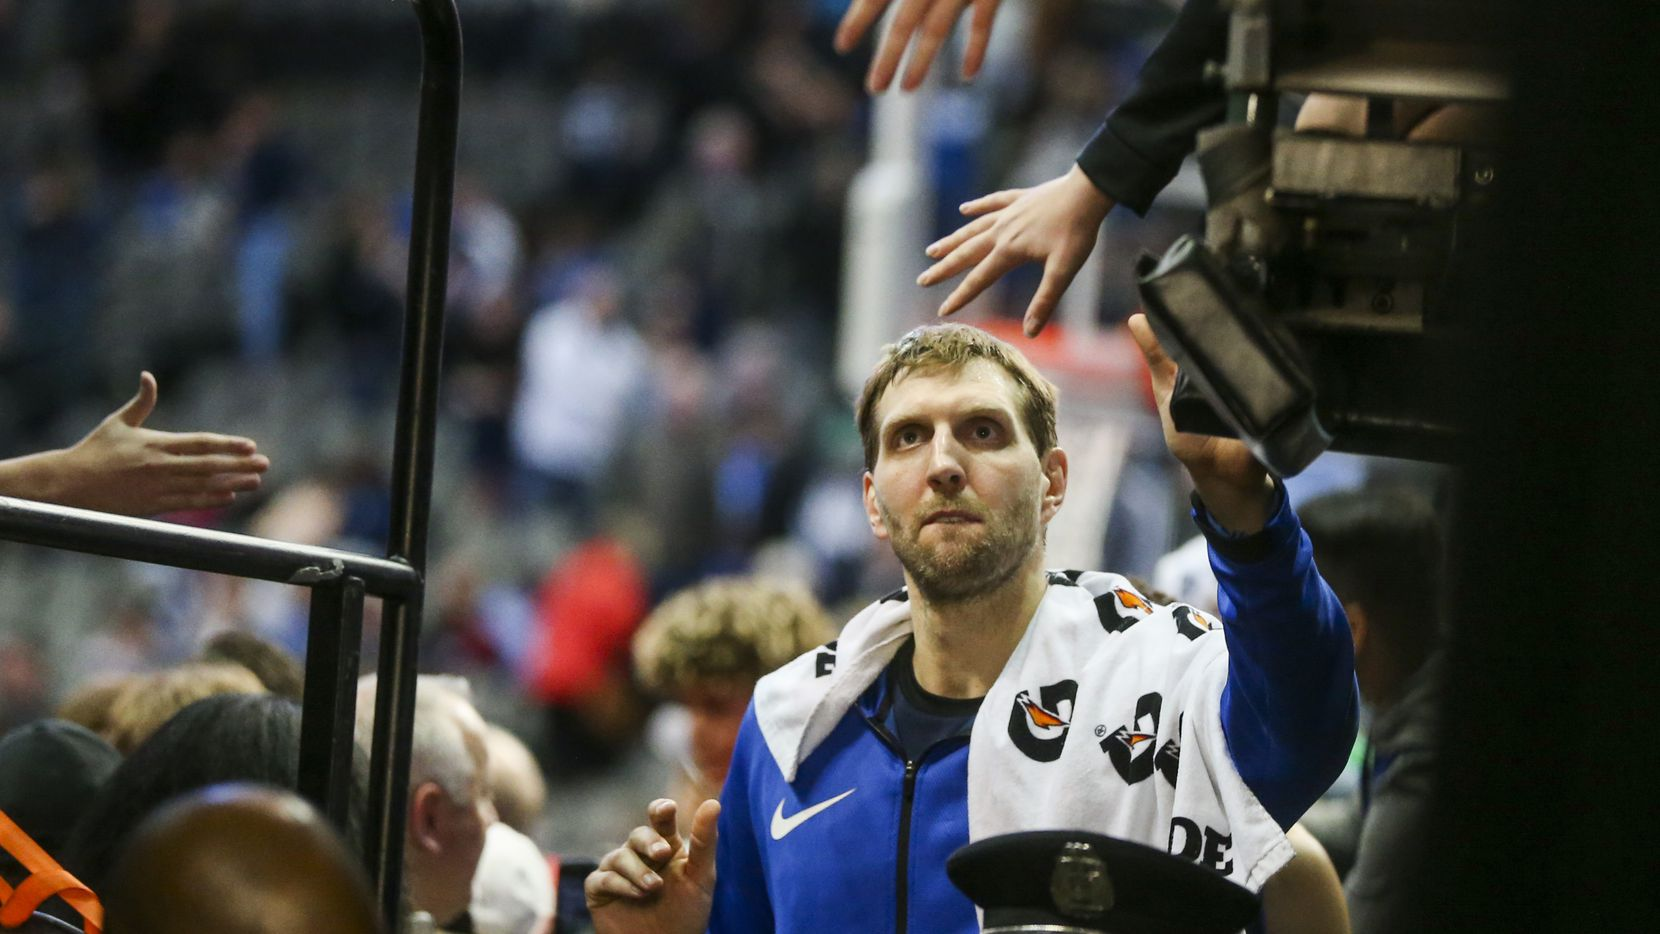 Dallas Mavericks forward Dirk Nowitzki (41) shakes fans hands following an NBA basketball game at American Airlines Center in Dallas on Saturday, March 2, 2019. The Mavericks lost 111-81. (Shaban Athuman/The Dallas Morning News)